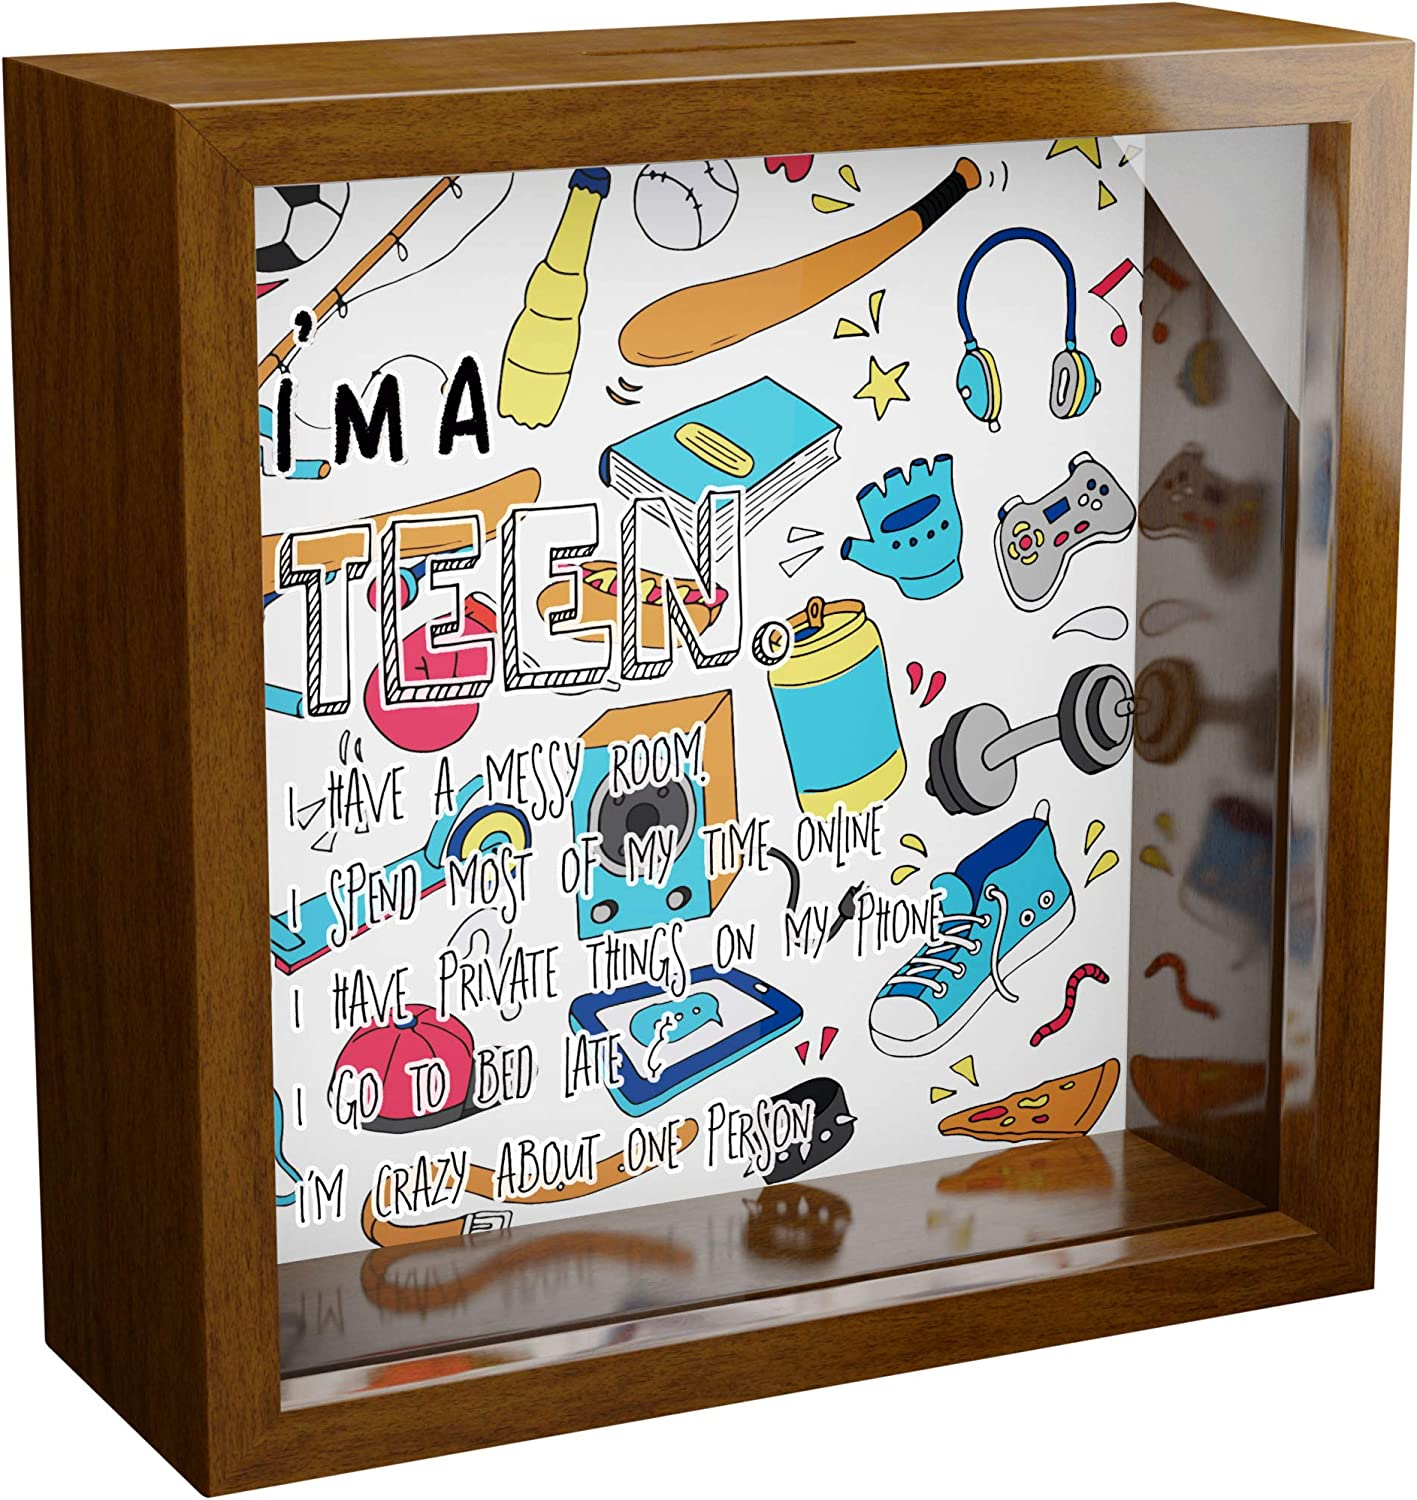 Gift for Teen Girl & Boy | A 6x6x2'' Wooden Themed Shadow Box for Teens | Cool Keepsake Picture Frame Decor for Teenager | Funny Best Friend BFF Birthday Novelty Present | Artsy Teen Room Decoration